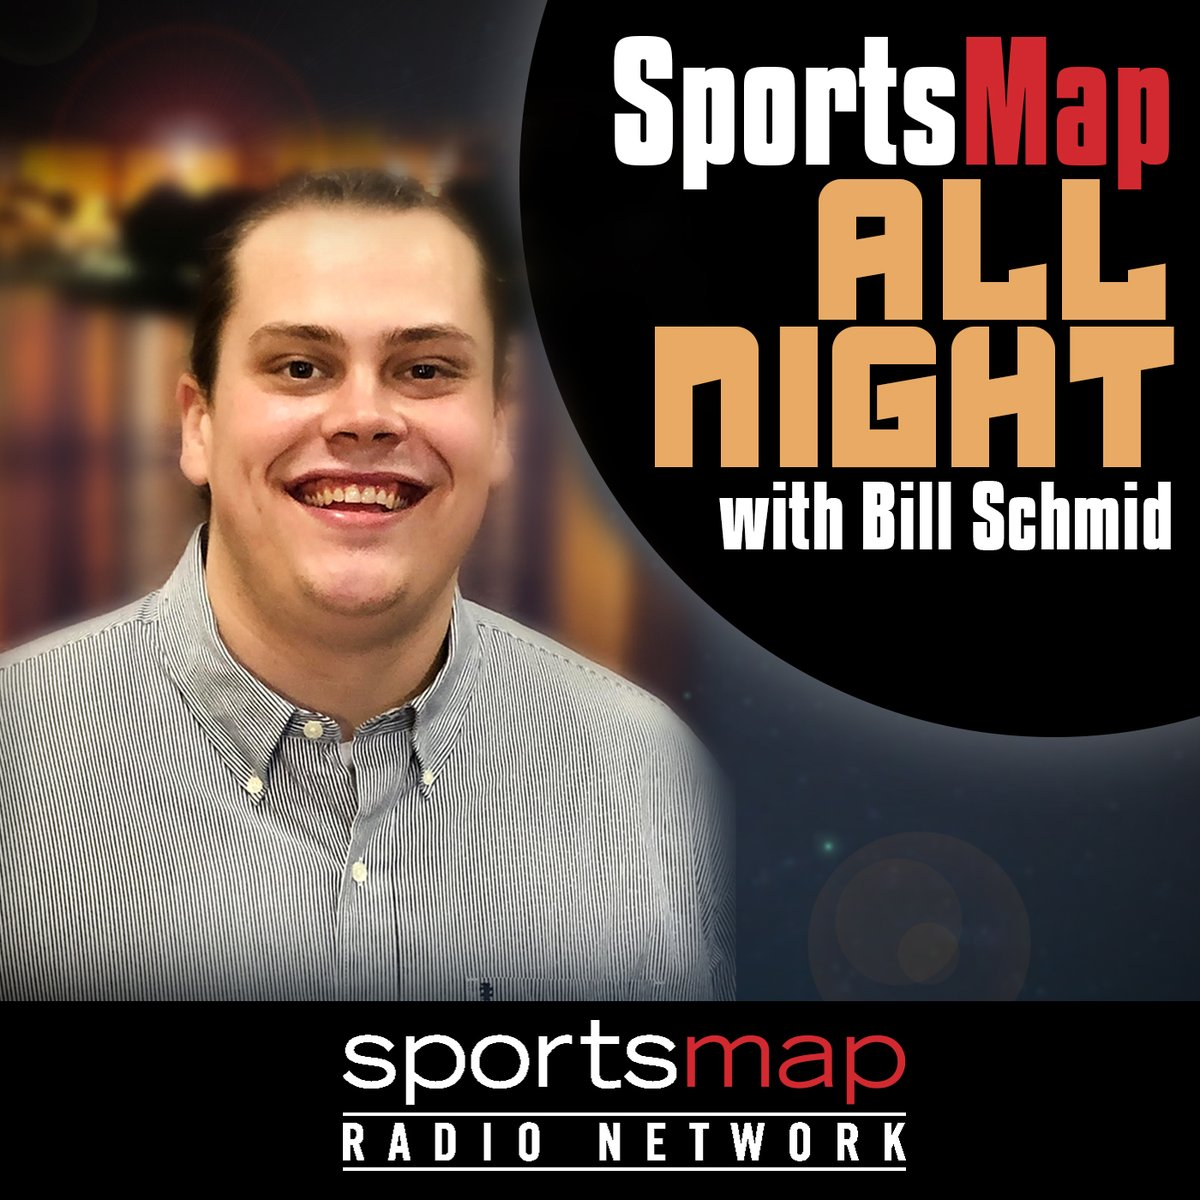 Hour 2 of #SportsMapAllNight w/ @BillSchmidRadio is LIVE!  📞: 1-800-224-2004  This hour: - What defense do you believe in the most Sunday? - Gronkowski on playing with Tom Brady in the playoffs - @BJ_DeGroot joins to talk #Packers  LISTEN LIVE: